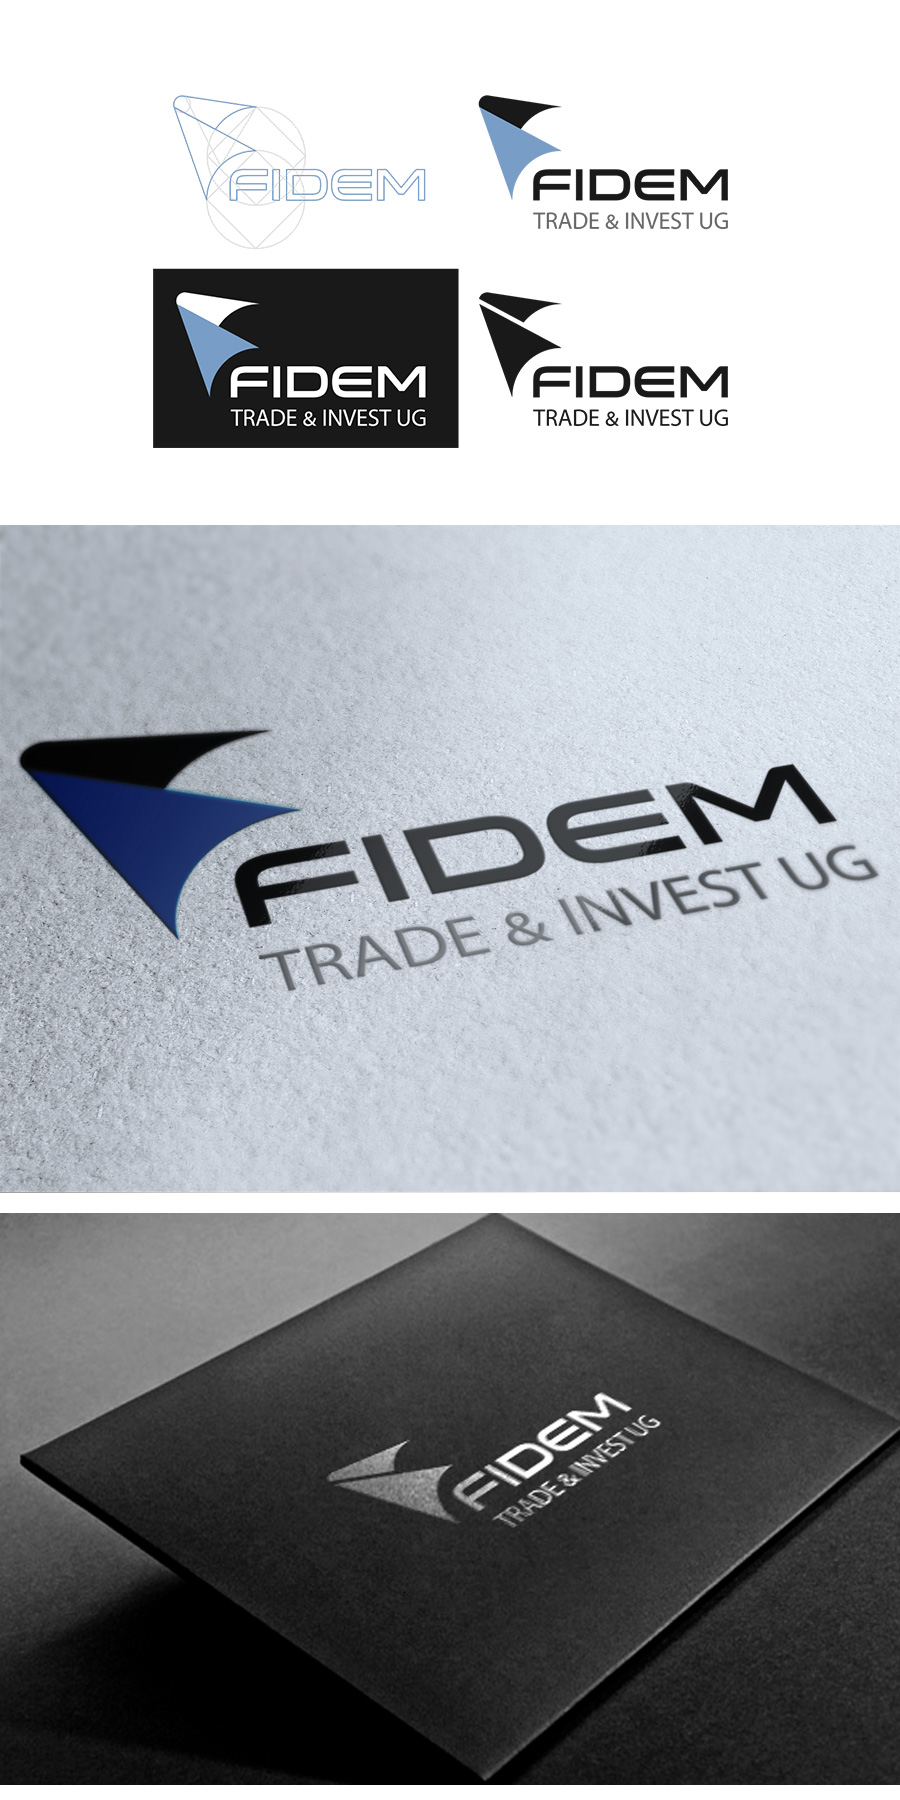 Logo Design by Jorge Sardon - Entry No. 679 in the Logo Design Contest Professional Logo Design for FIDEM Trade & Invest UG.